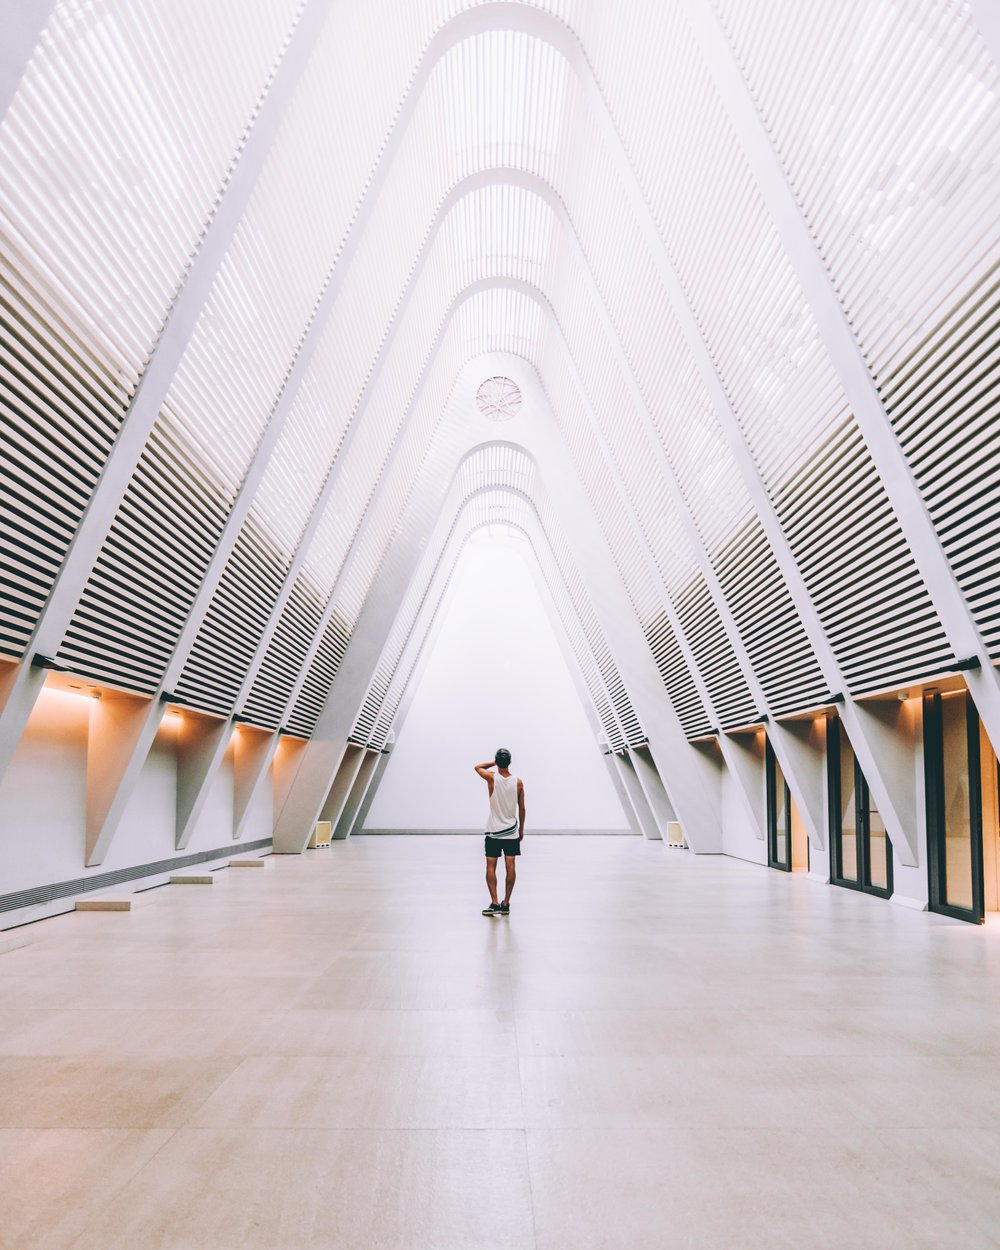 New places always help us look at life differently | The Glasshouse on Level 2   @thepeihan